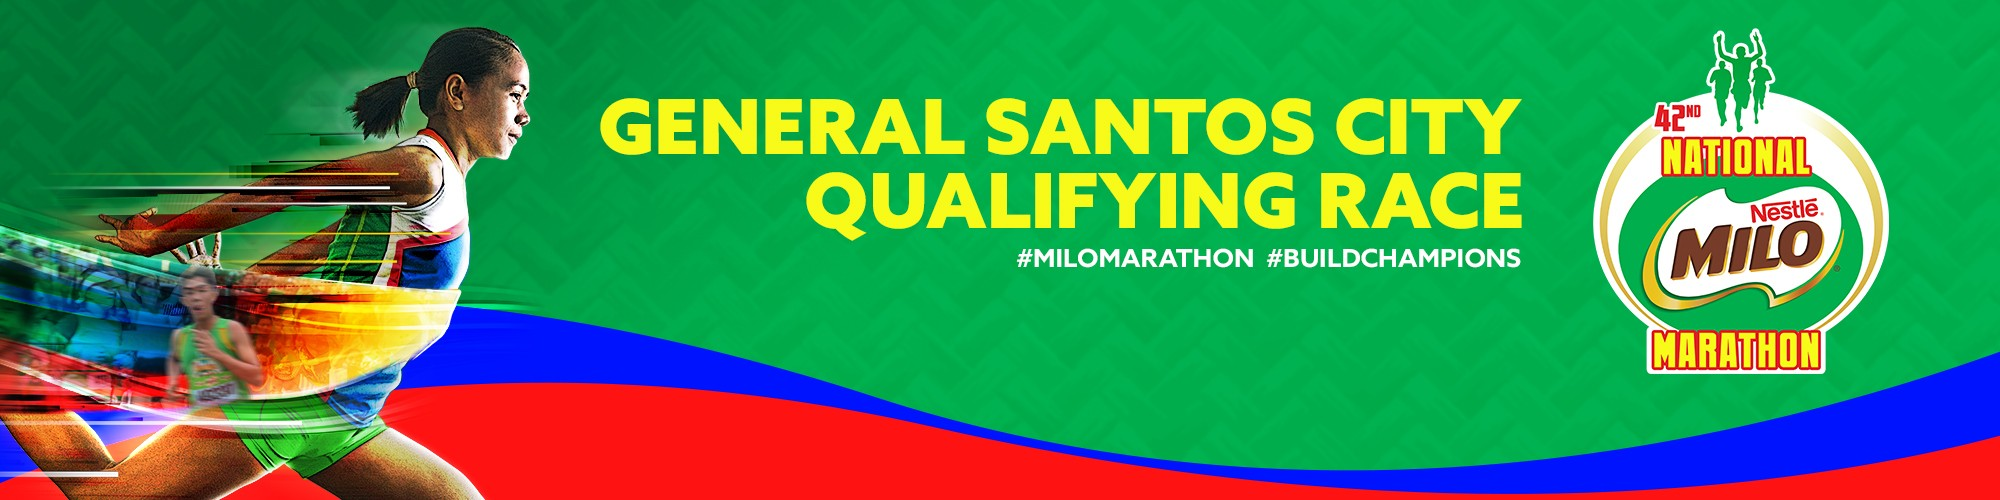 2019 National MILO Marathon General Santos City